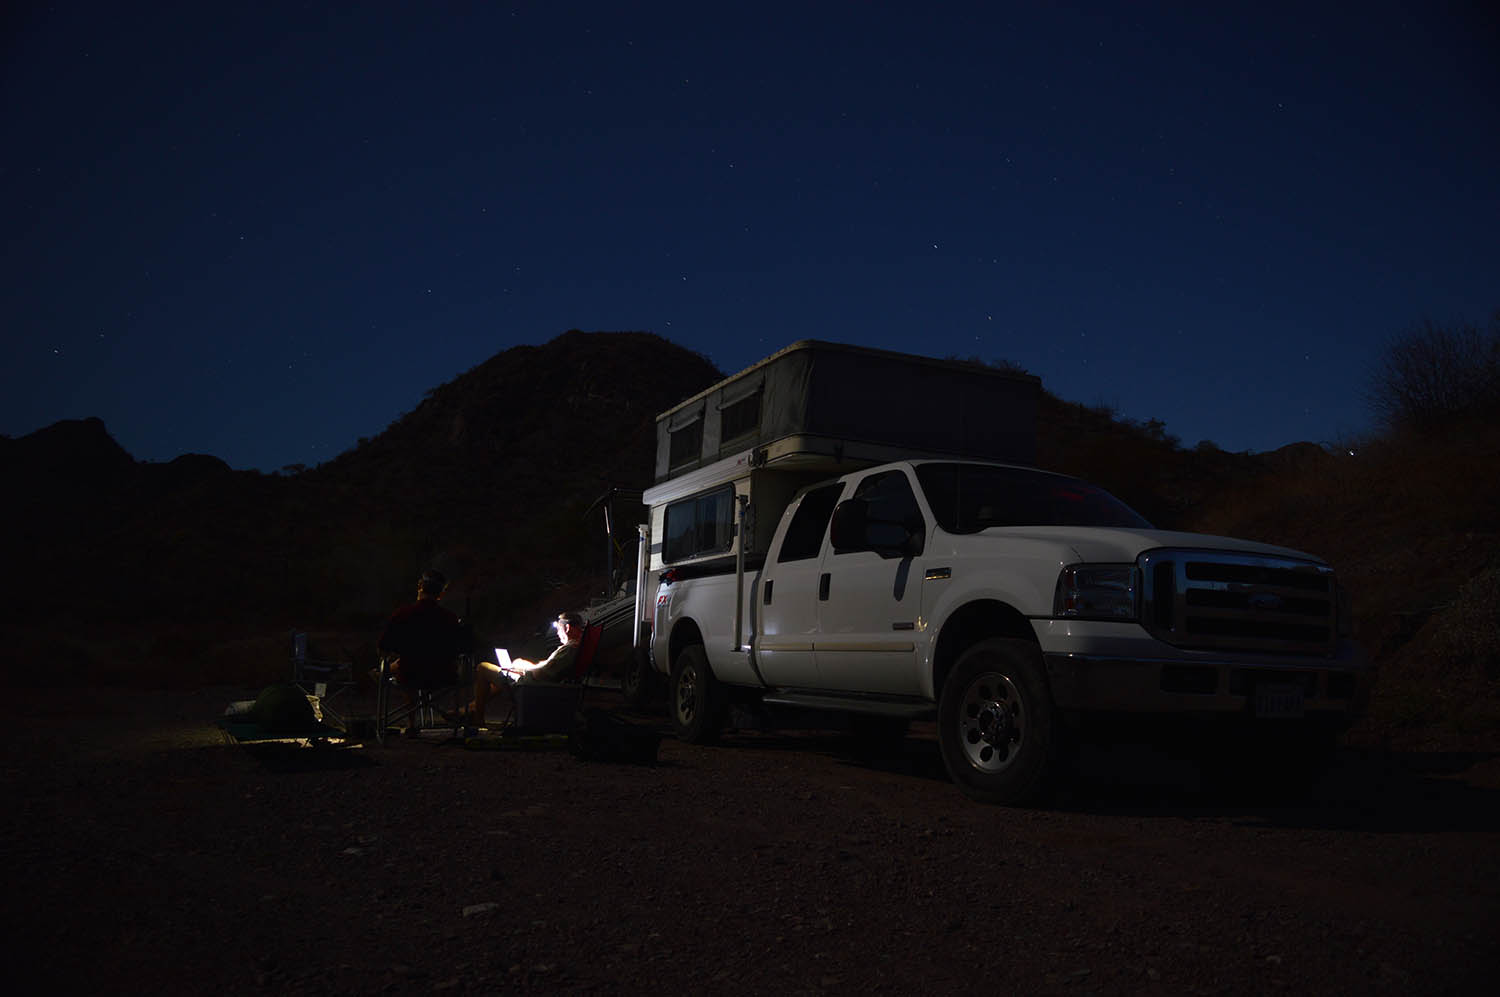 Camp at night.